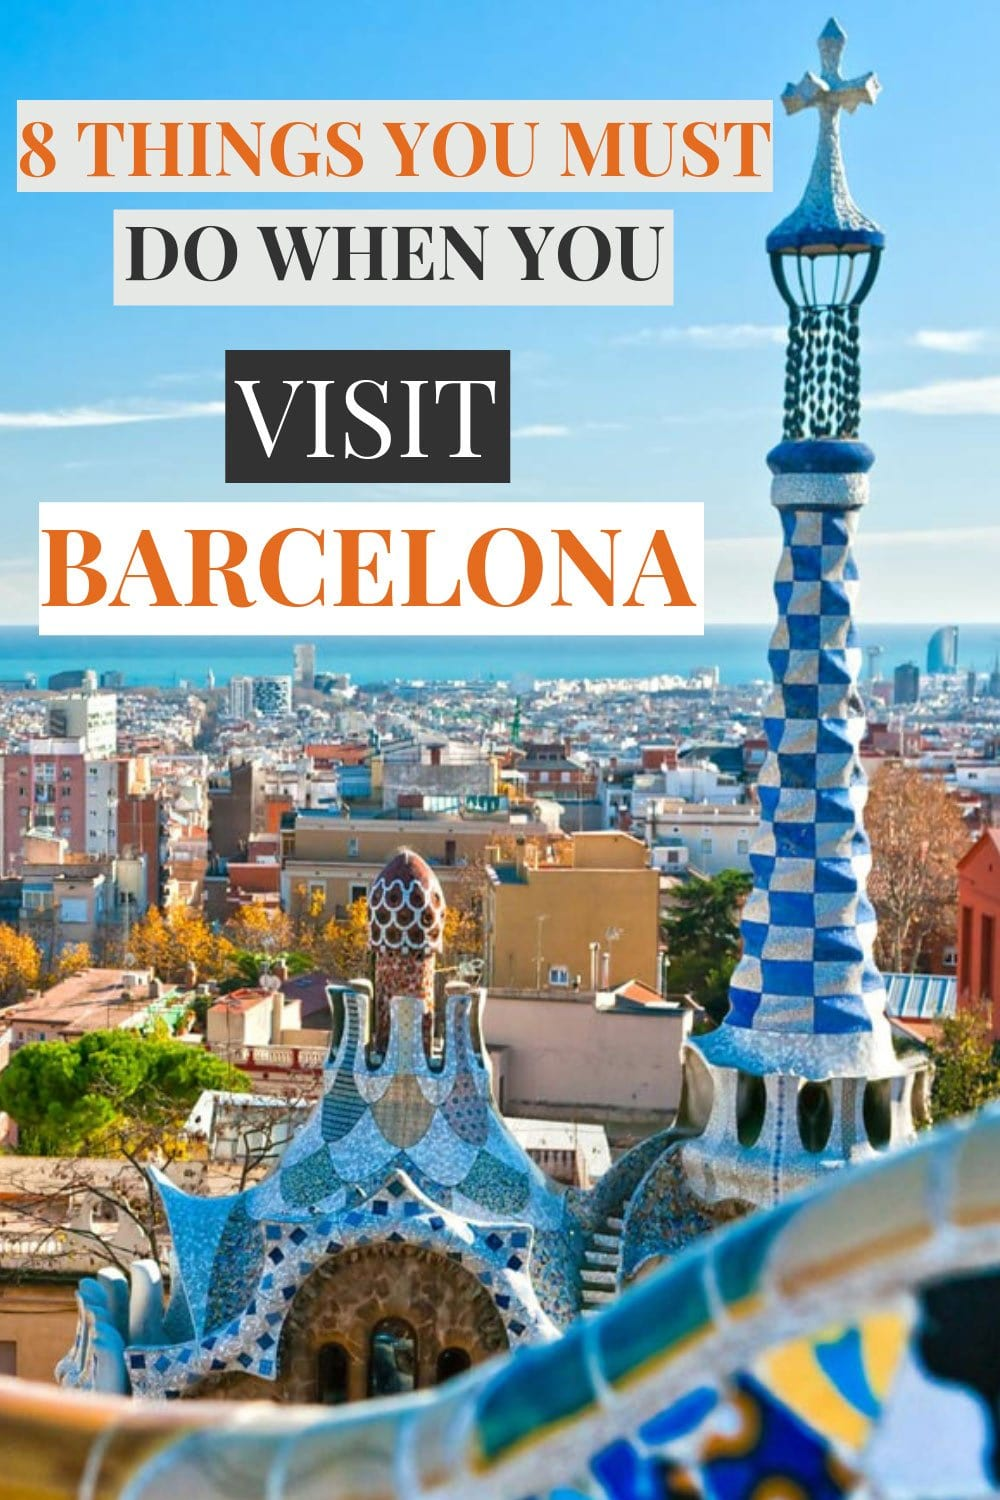 There are plenty of good reasons why Barcelona is so popular. The appeal of a vibrant, modern city with an amazing climate is just too good to miss. Head there before the main tourist season and avoid (some of) the crowds. #visitbarcelona